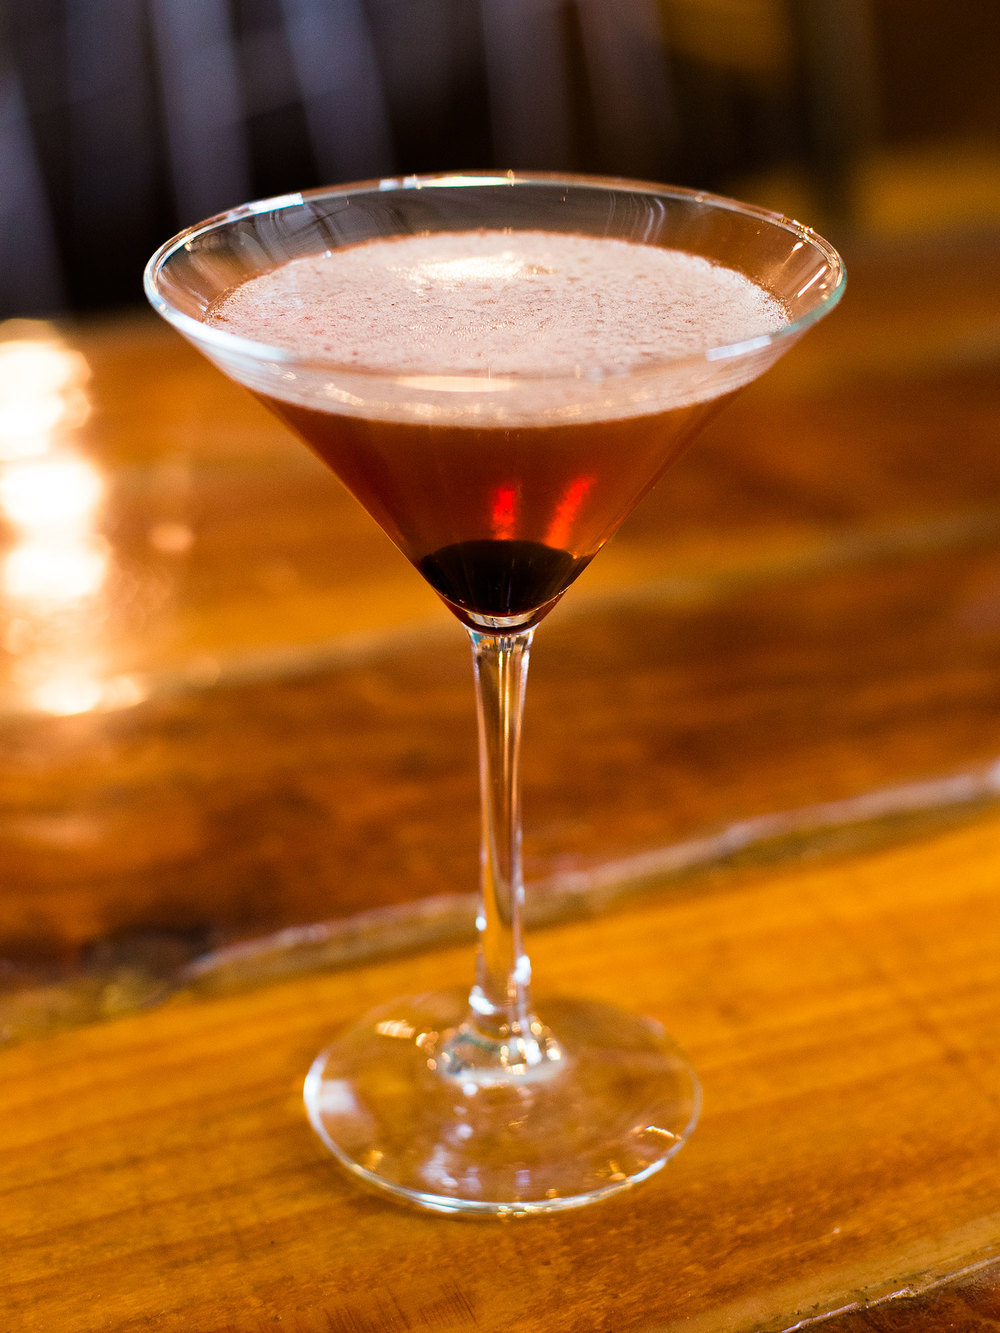 Feisty Manhattan: Feisty bourbon (distilled in Colorado), Contratto Rosso & Luxardo cherry